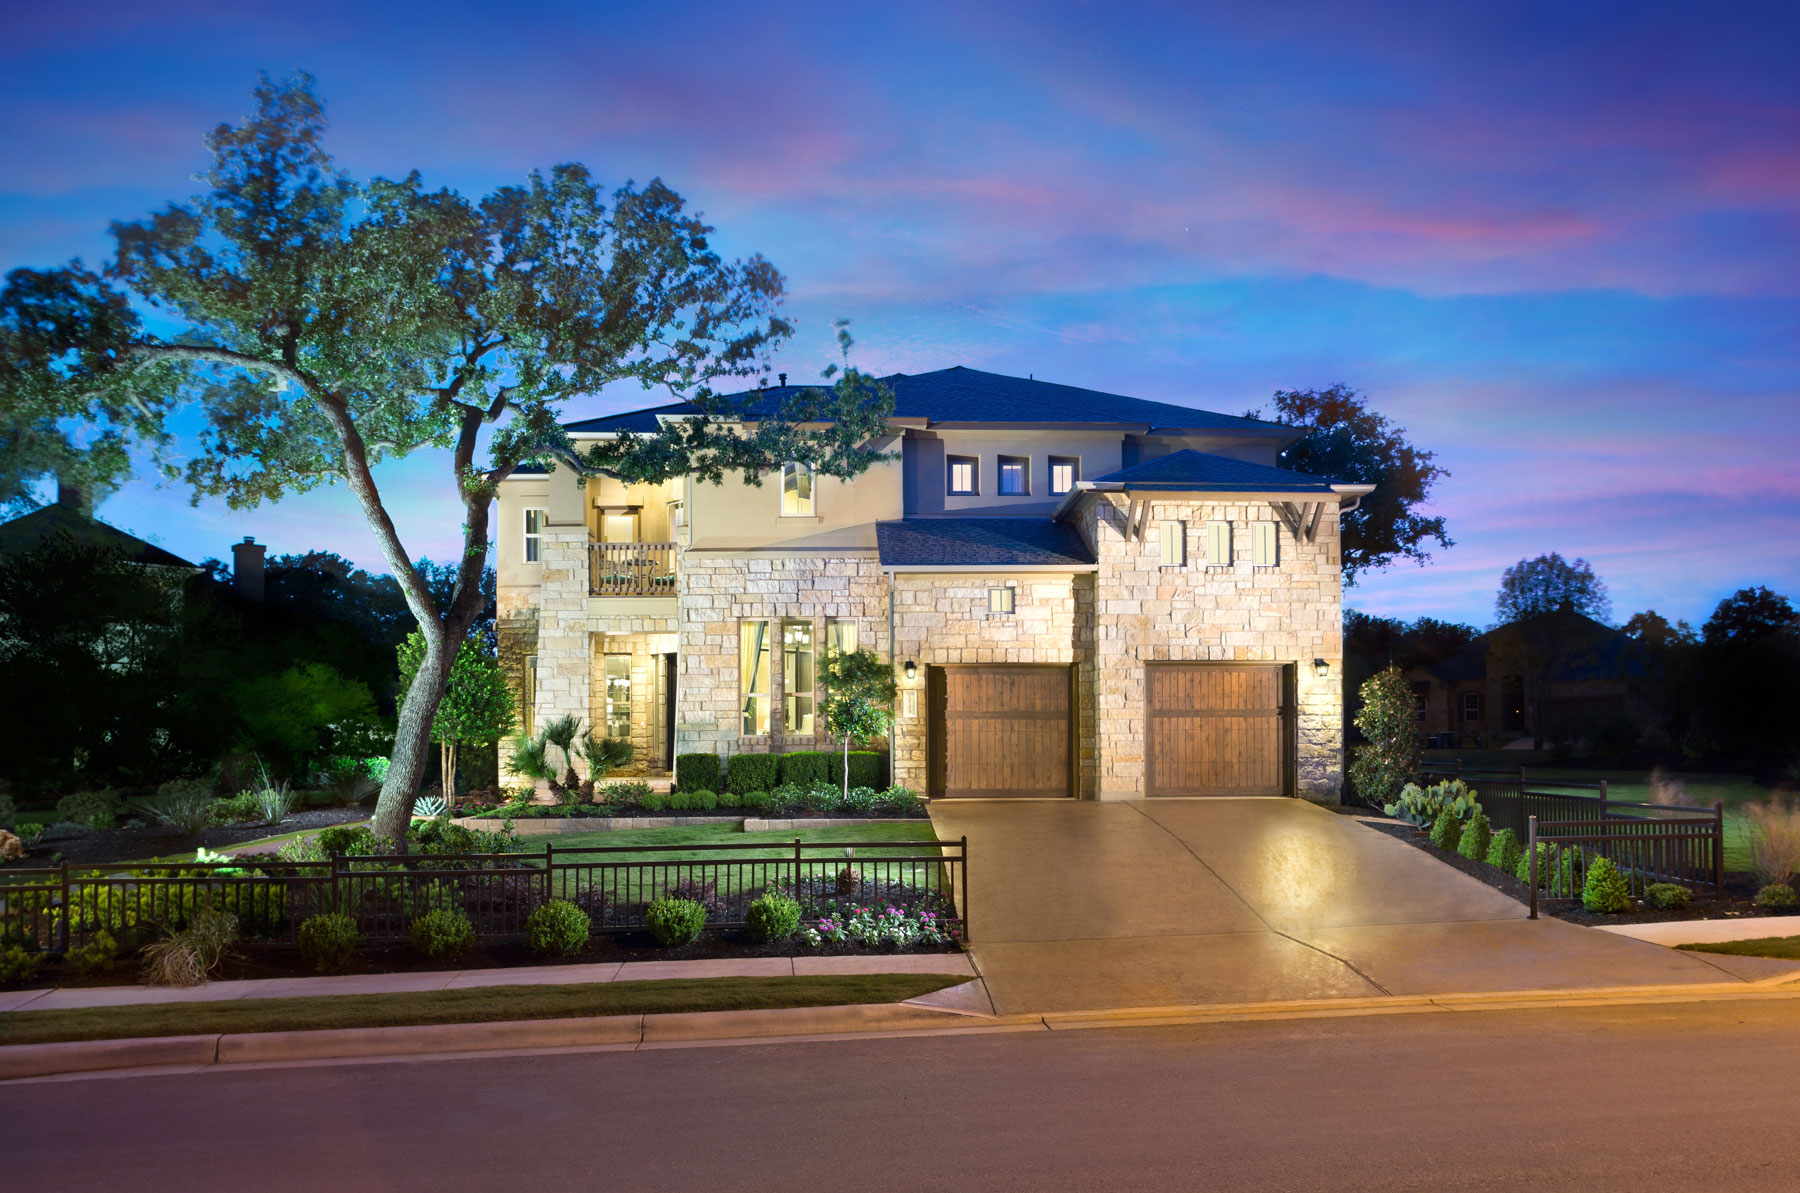 Village Builders, Lennar, Parten builder, our builders, SW Austin, Parten, Parten Texas, SW Texas, Dripping Springs